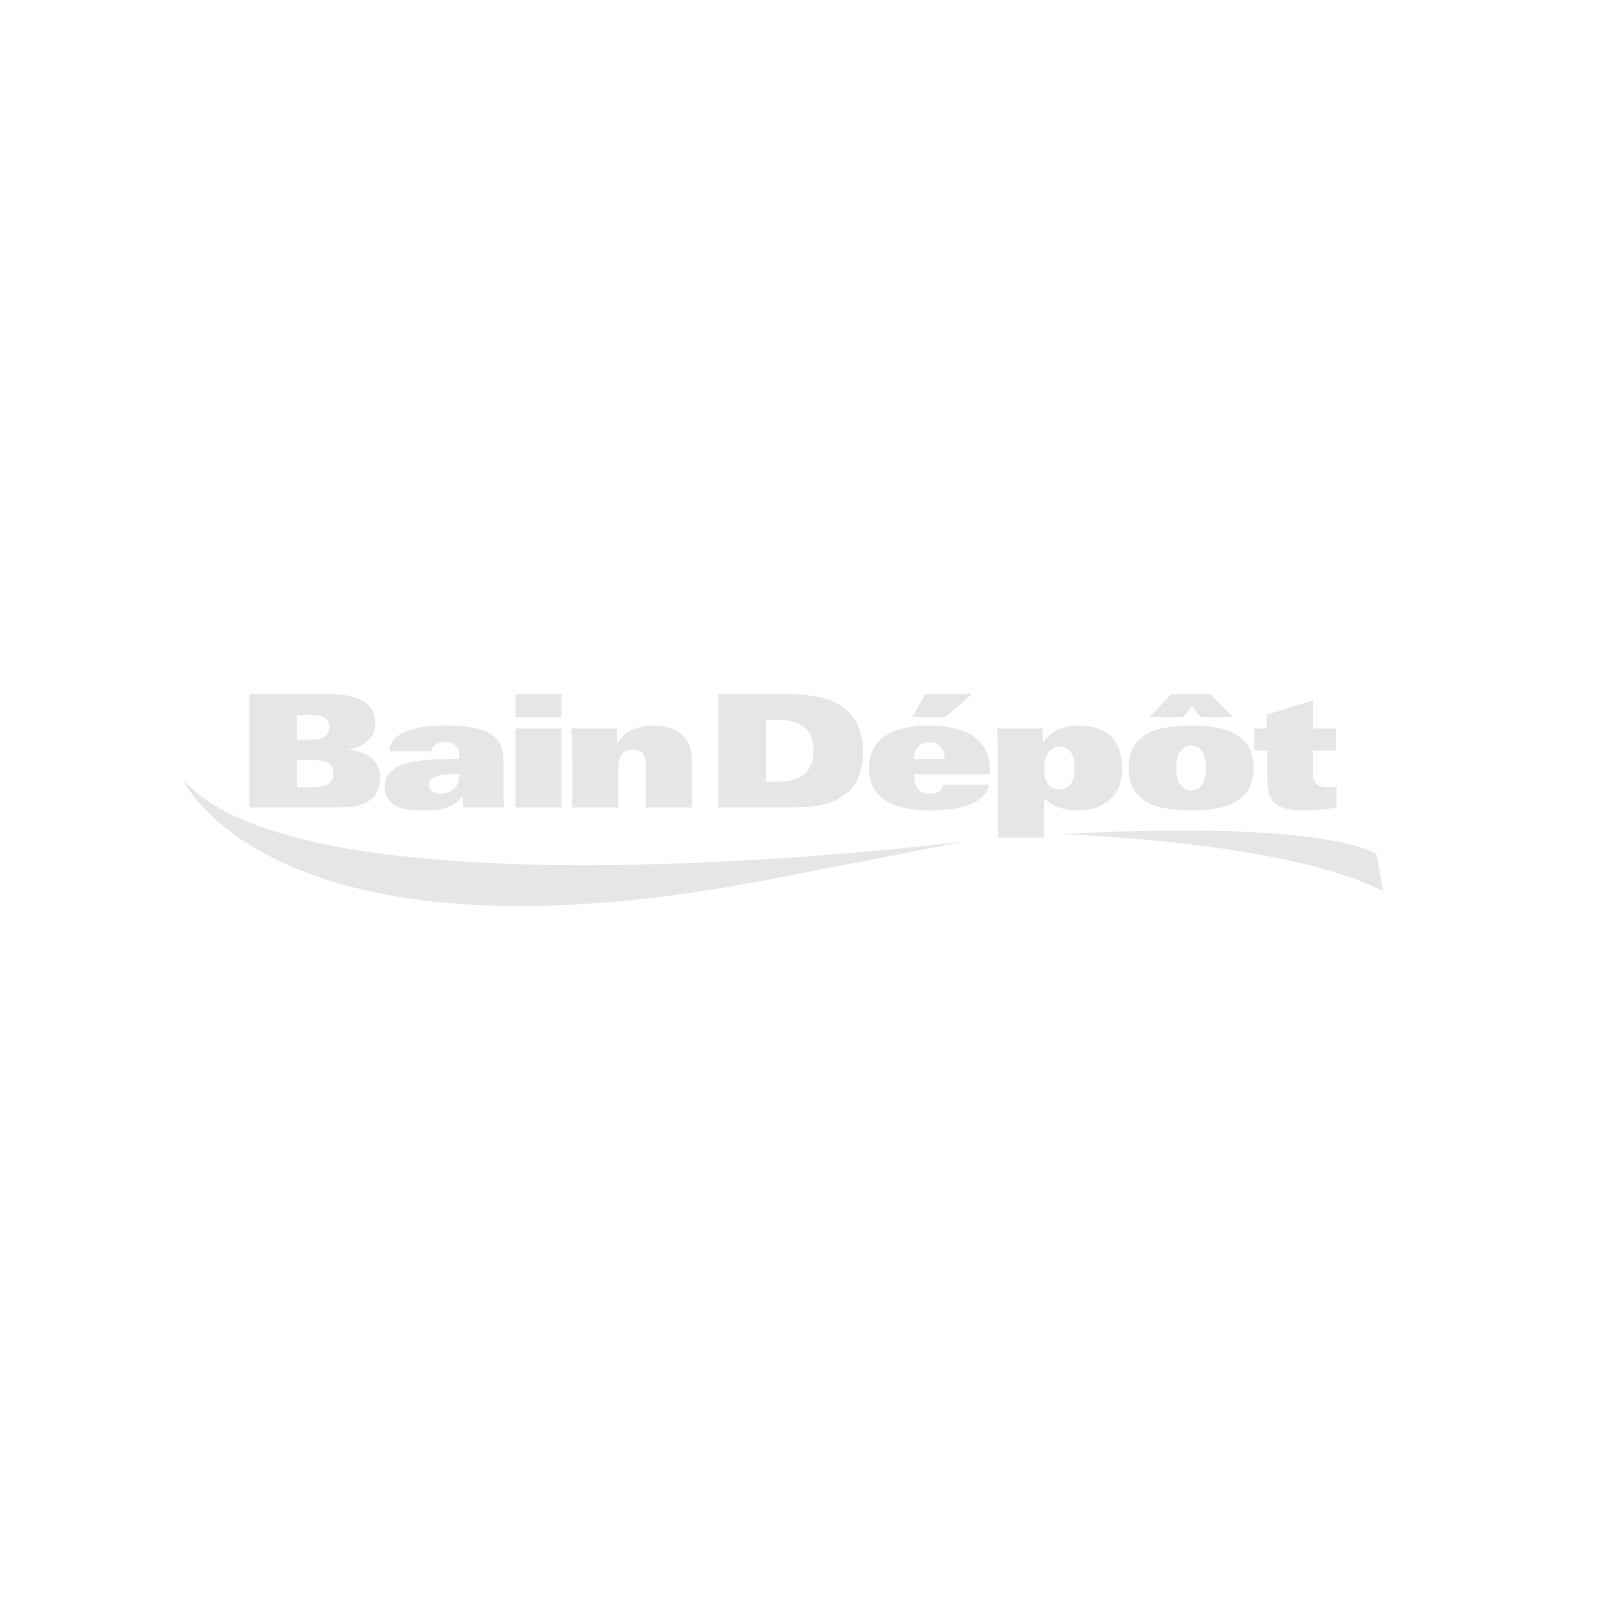 Chrome single-hole bathroom sink faucet with curved spout